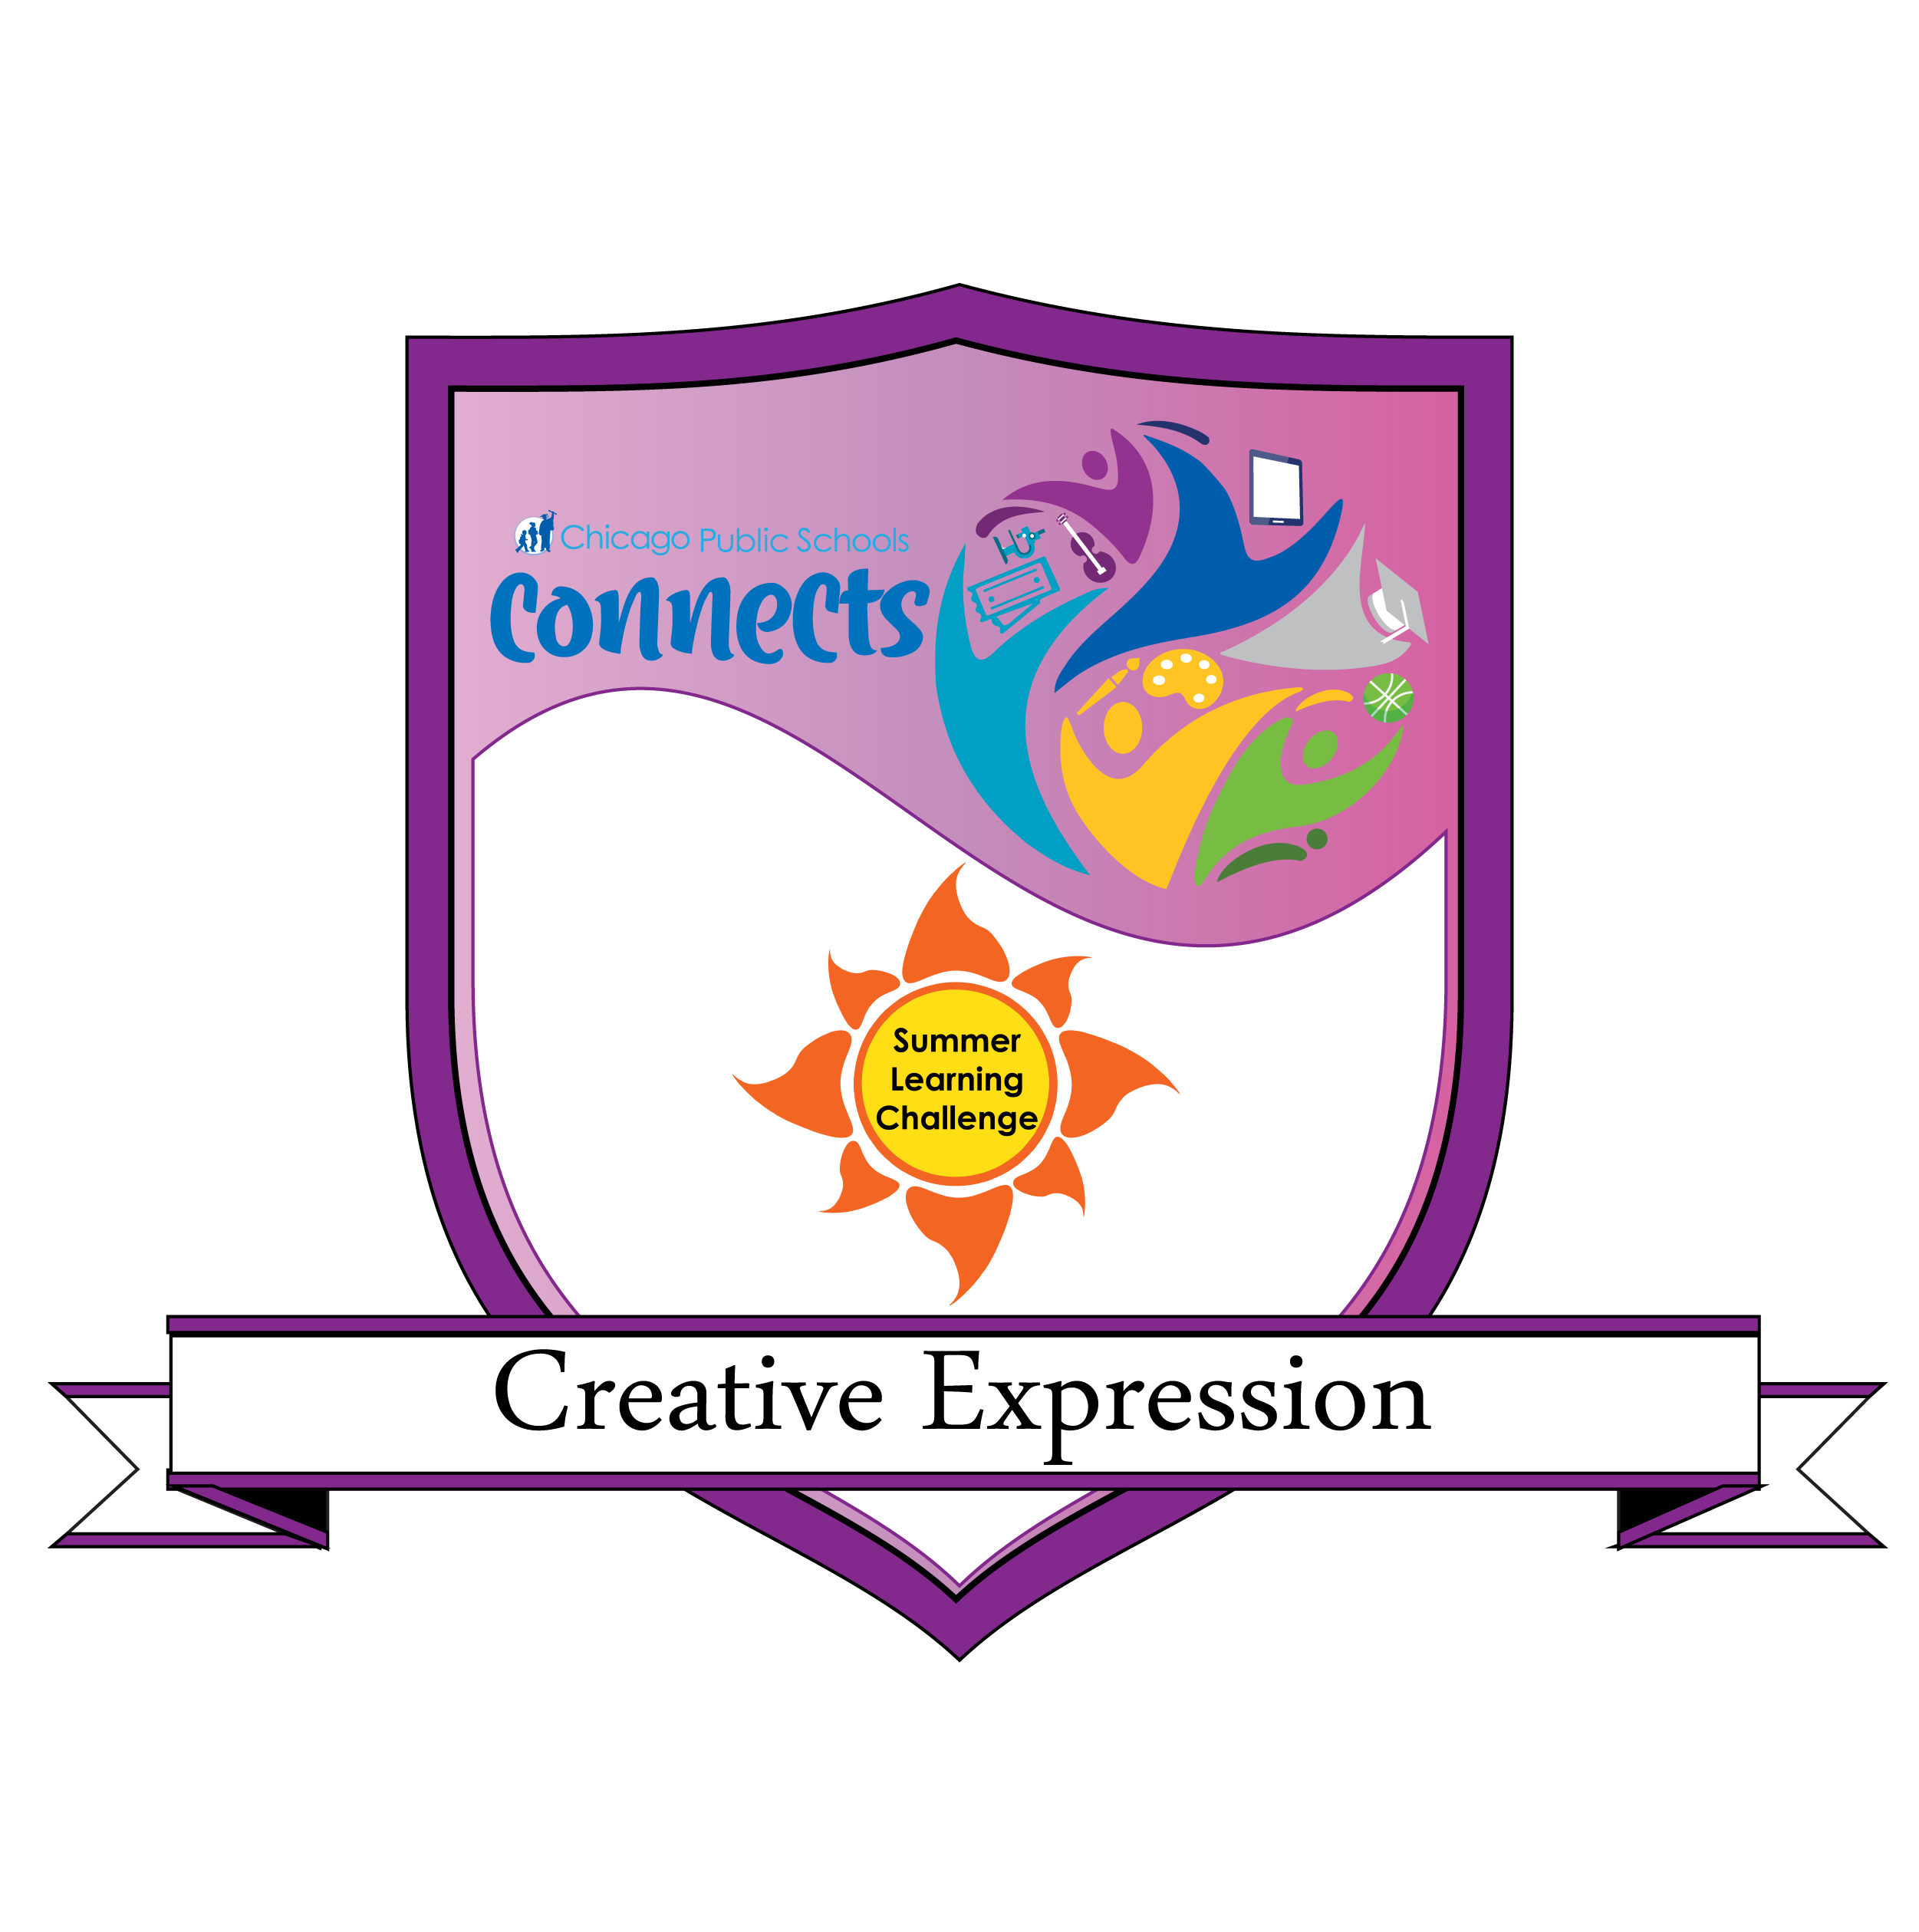 CPS Connects Summer 2016: Creative Expression